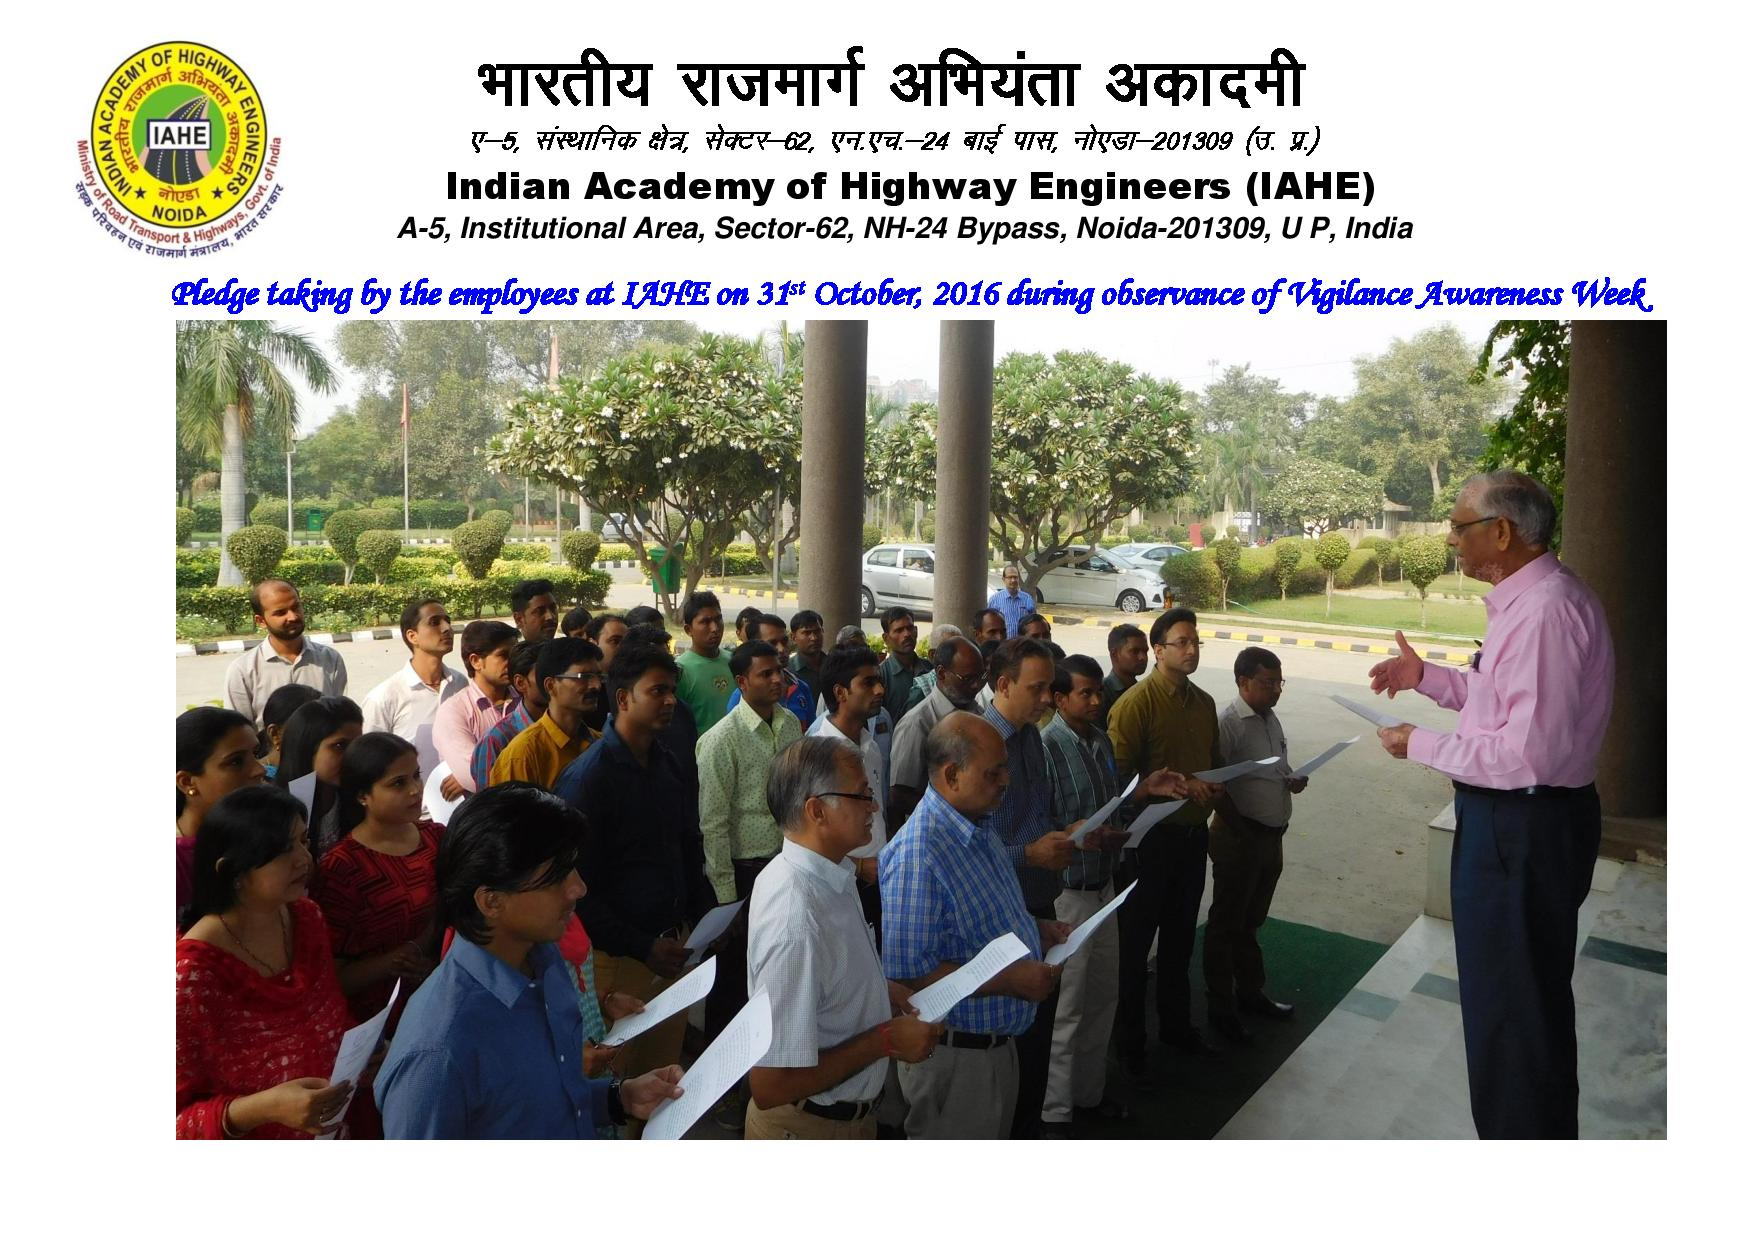 Pledge taking by the employees at IAHE -page-001